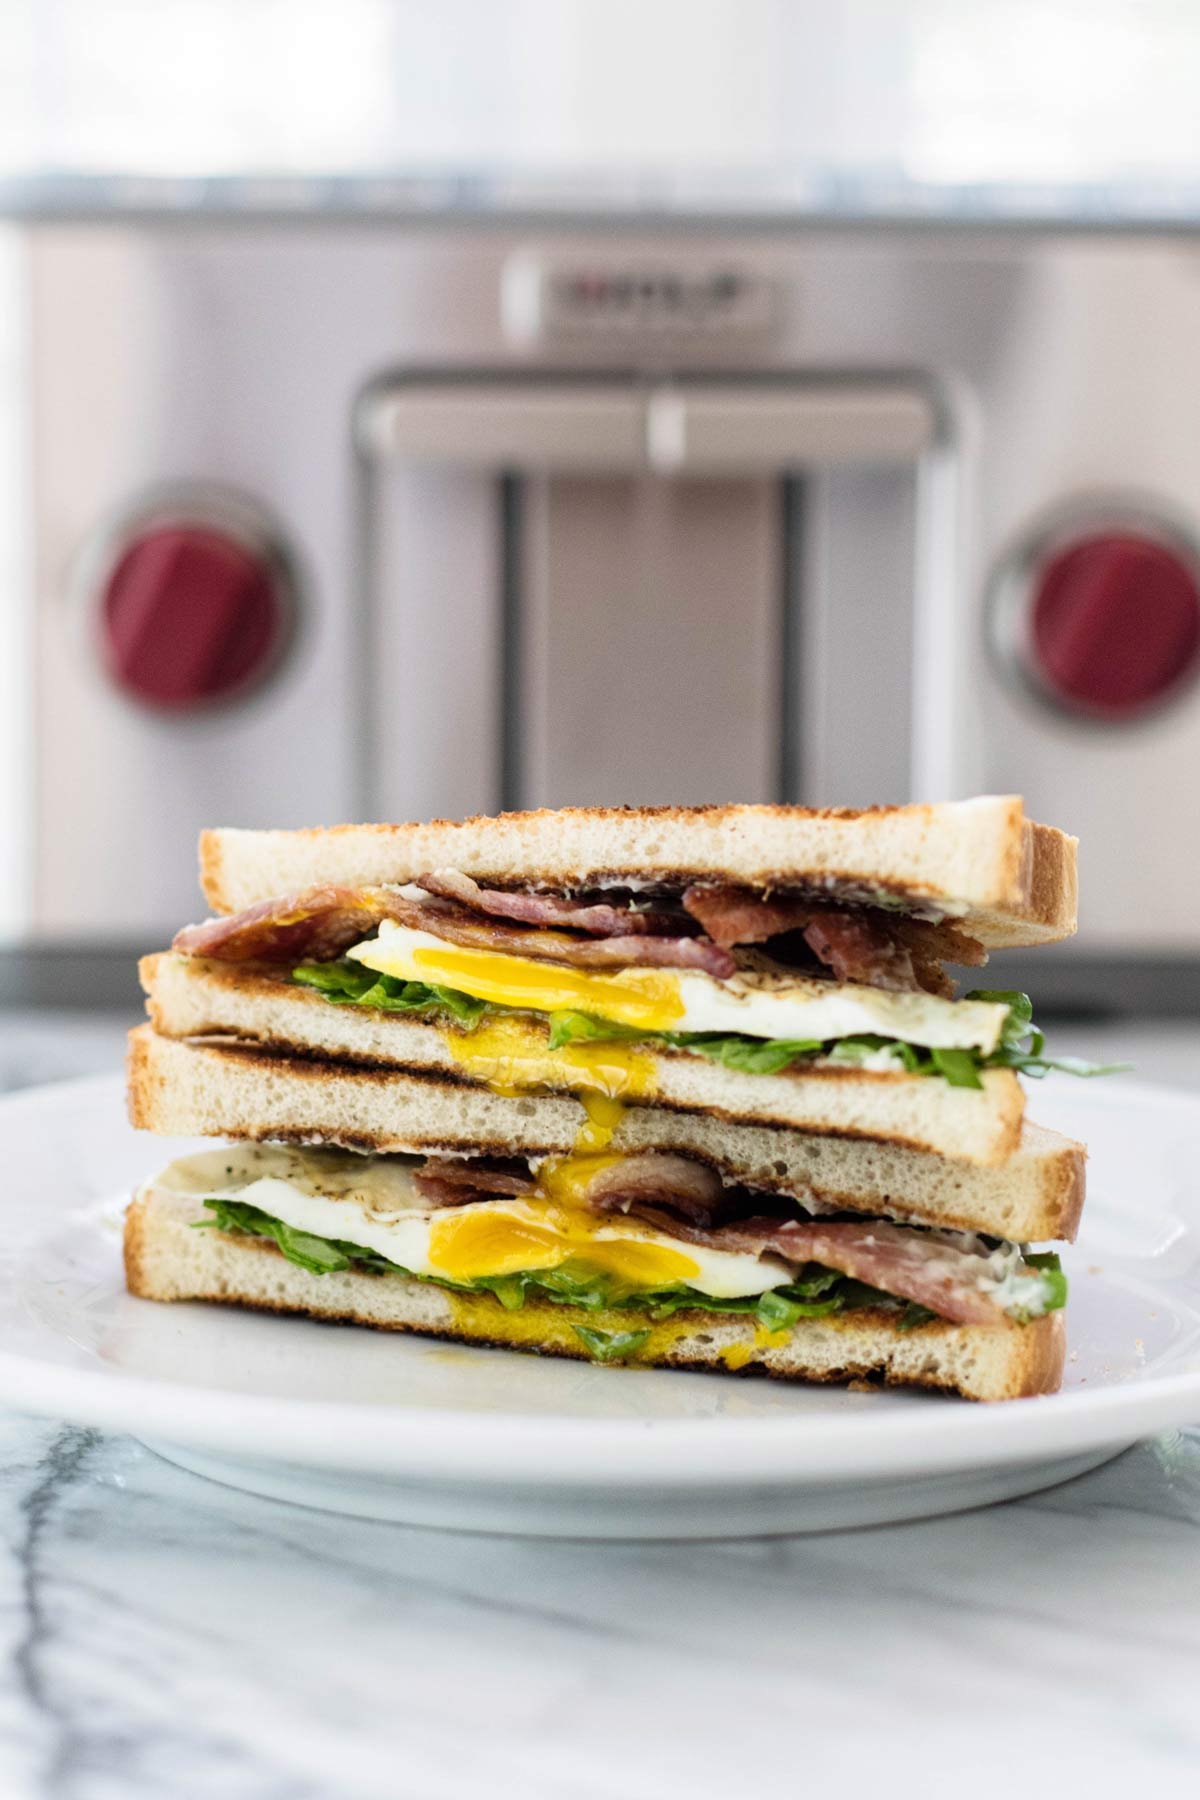 a stack of two sandwich slices